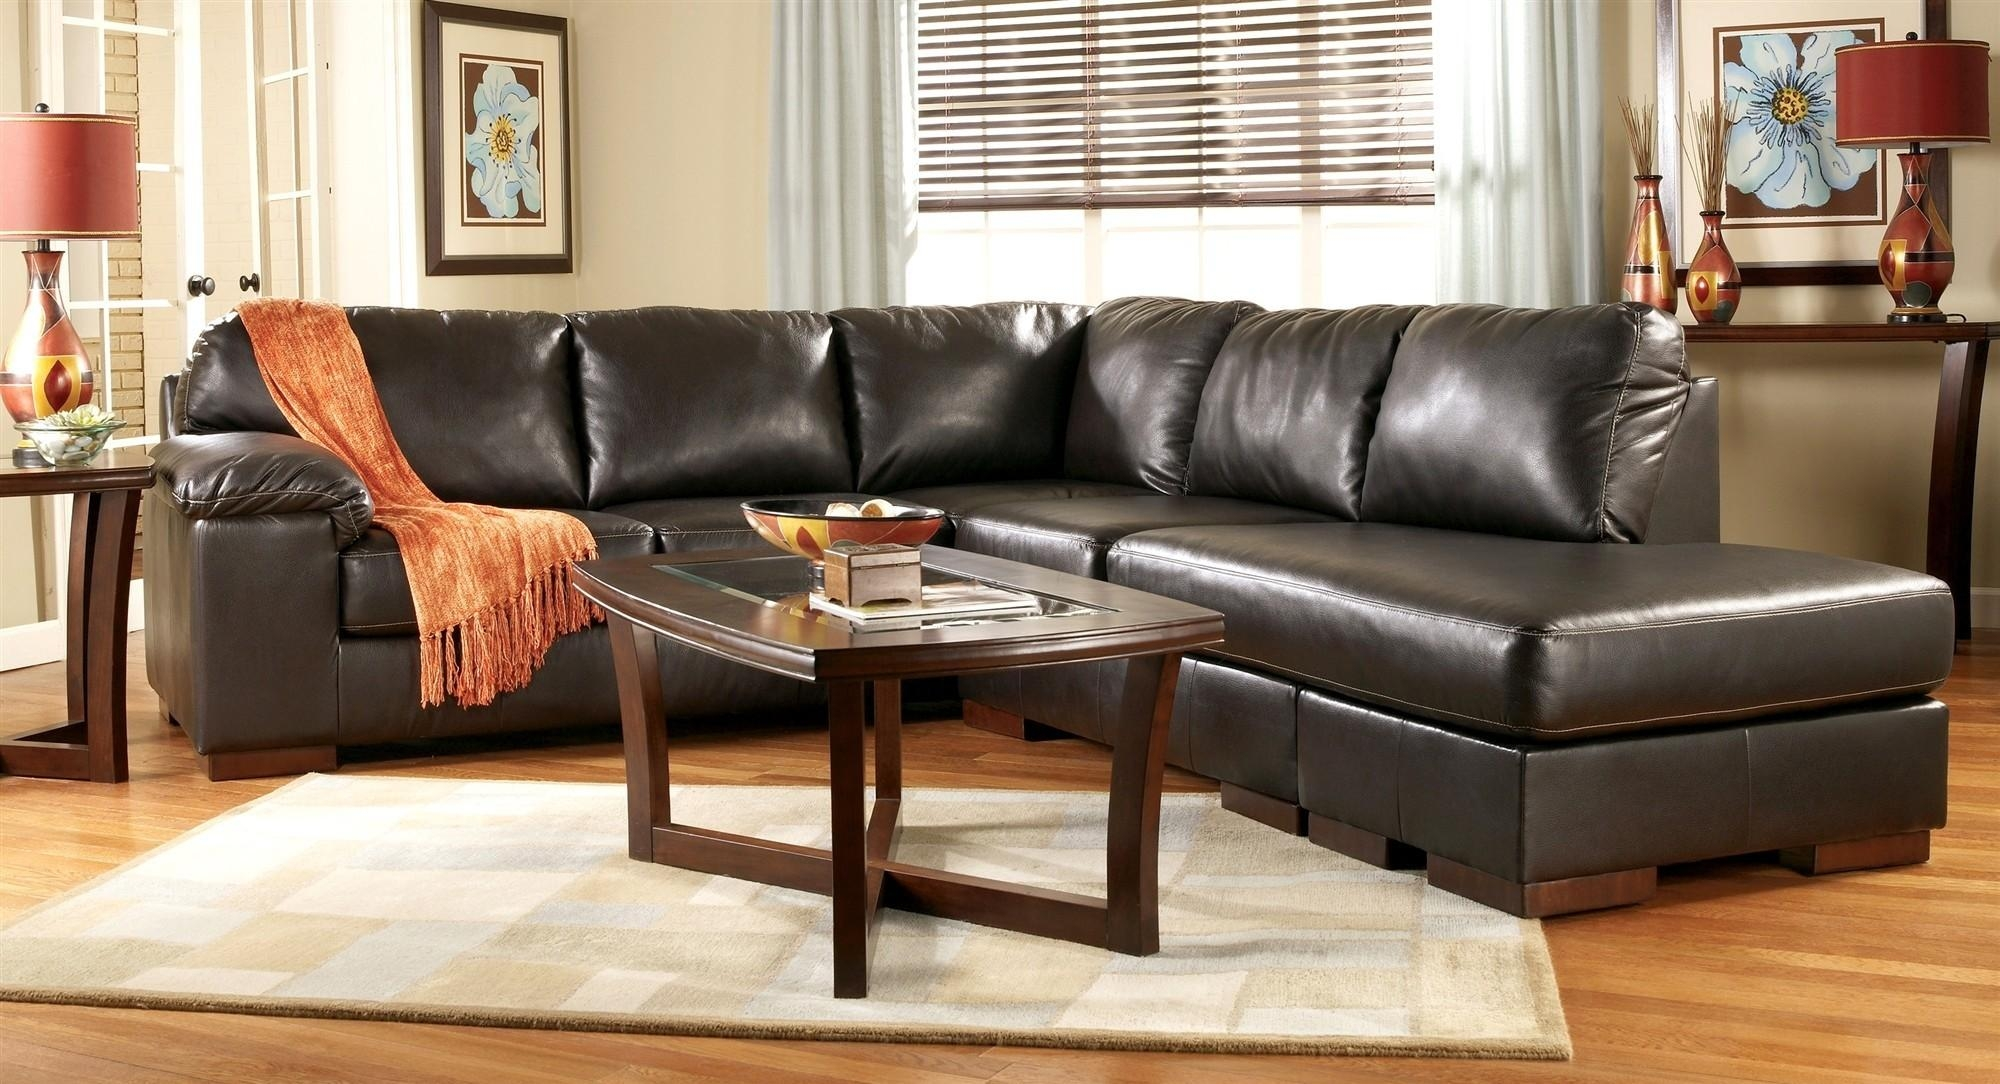 20 Best Ideas Dark Red Leather Couches Sofa Ideas